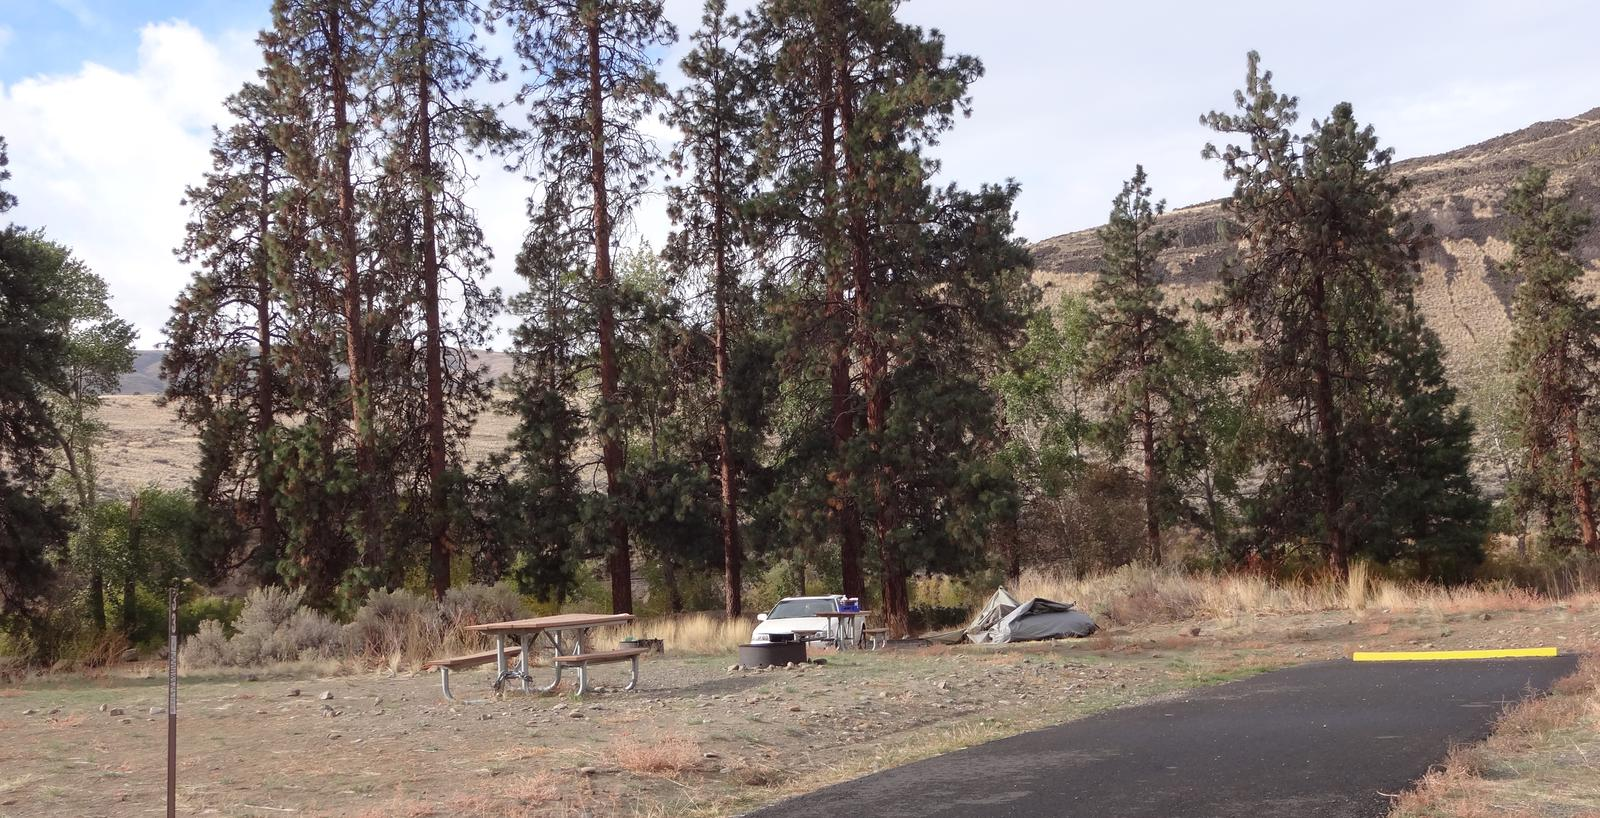 Parking pad, picnic table and fire ring at Big Pines Campsite #33Big Pines campsite #33